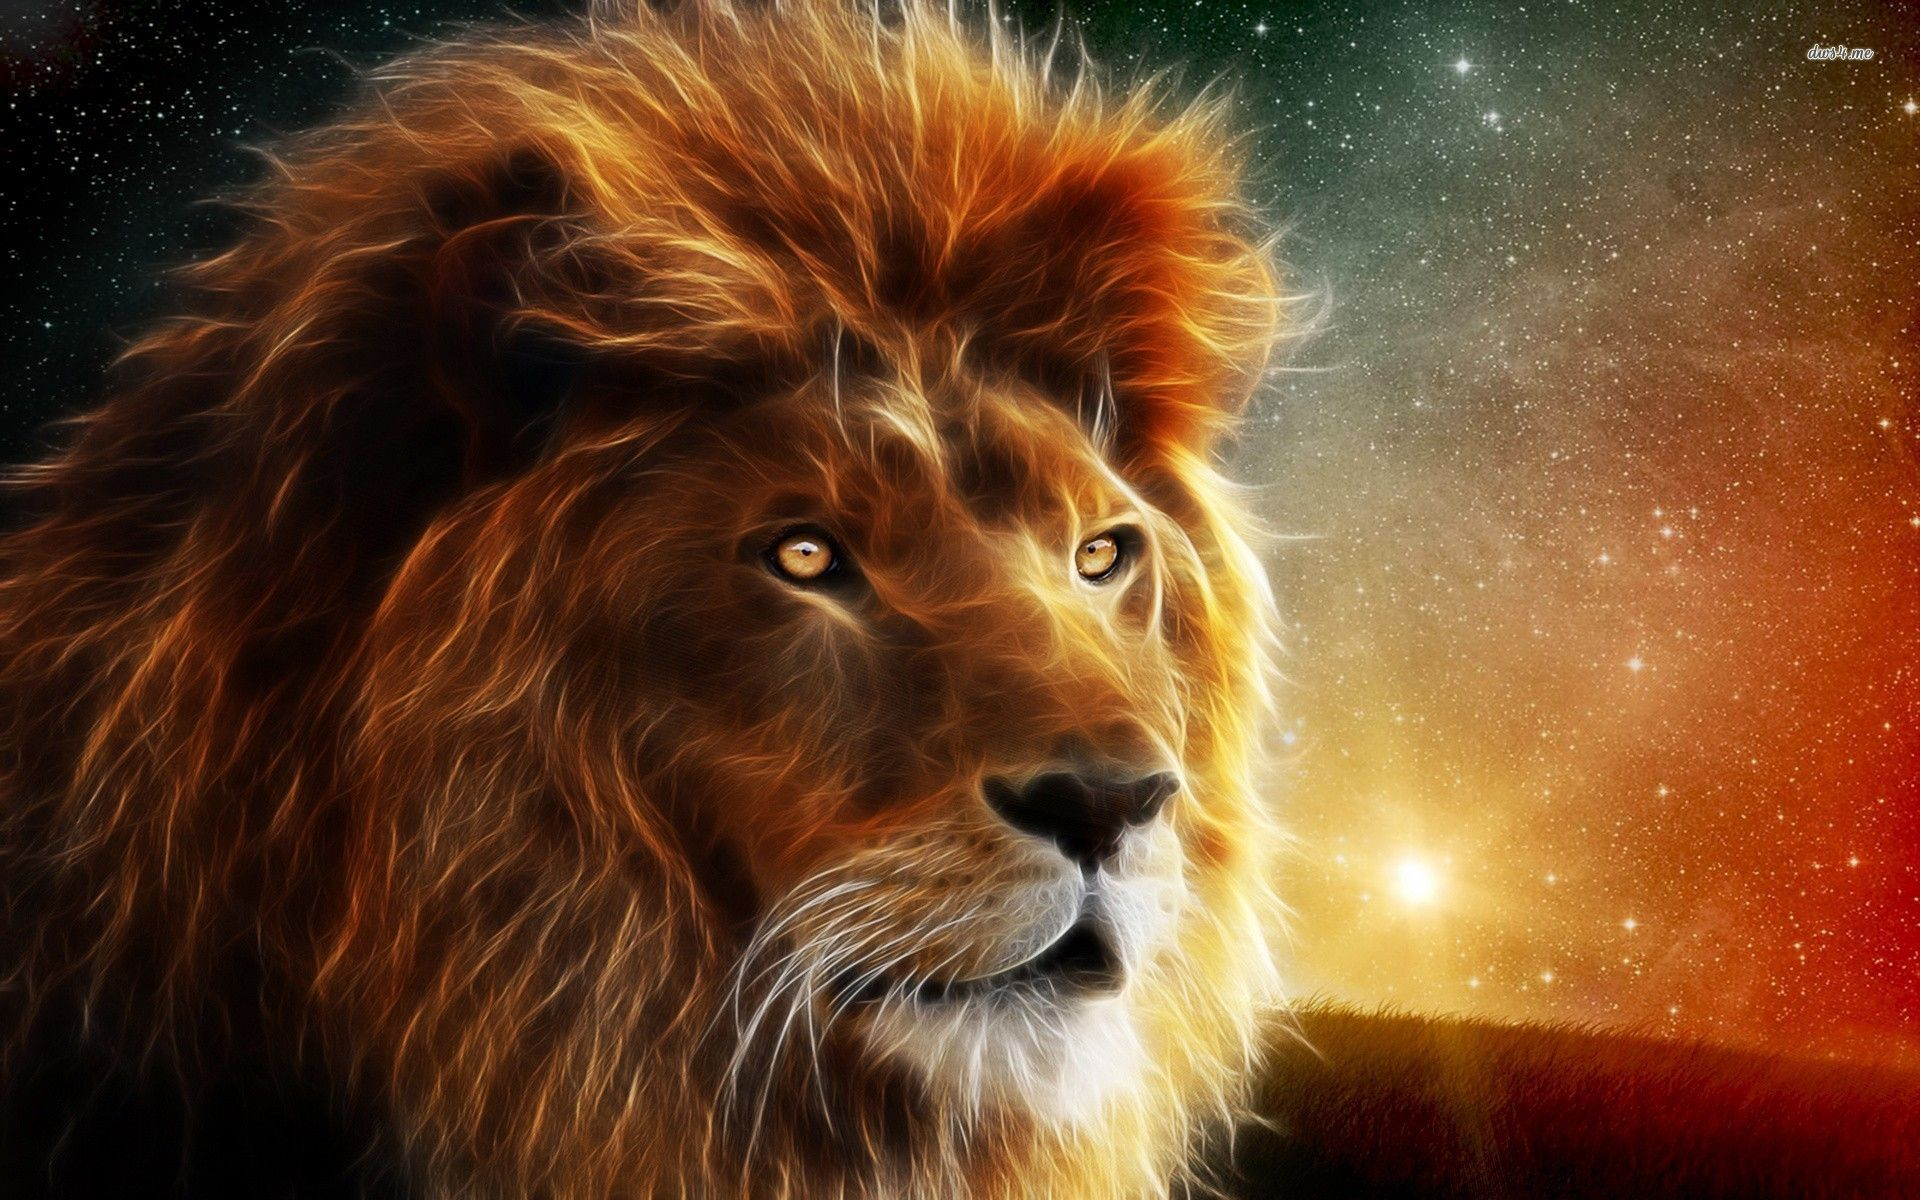 1920x1200 70+ Cool Lion Wallpapers on WallpaperPlay